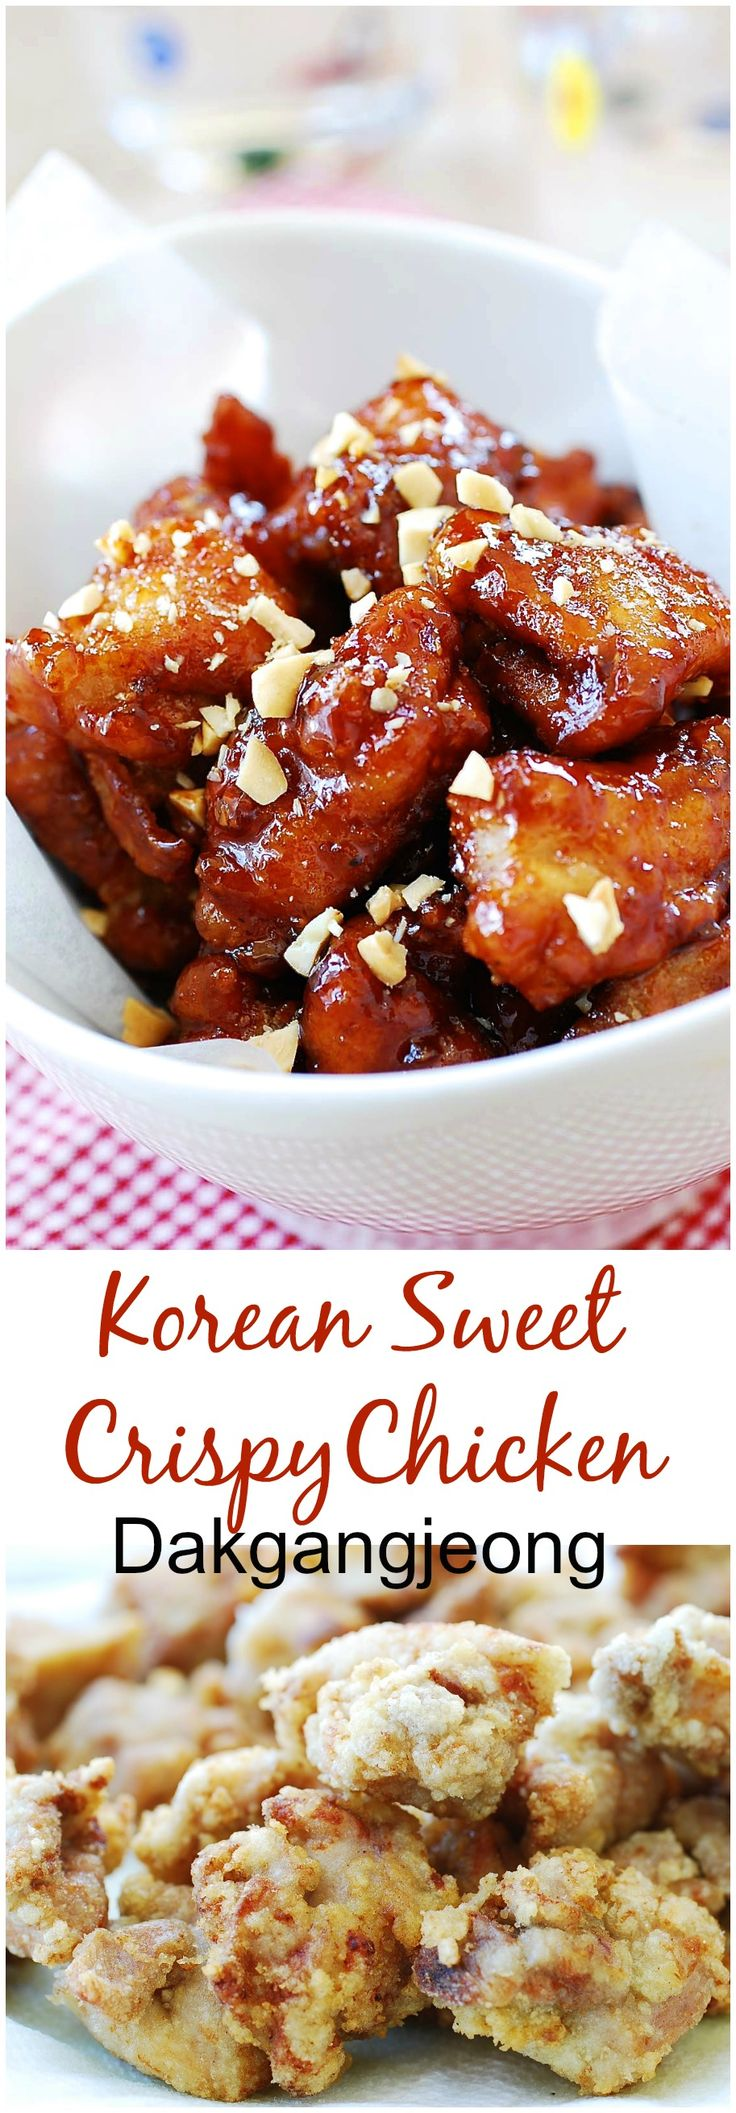 Korean fried chicken that's crispy, sweet, tangy, and spicy all in one bite!